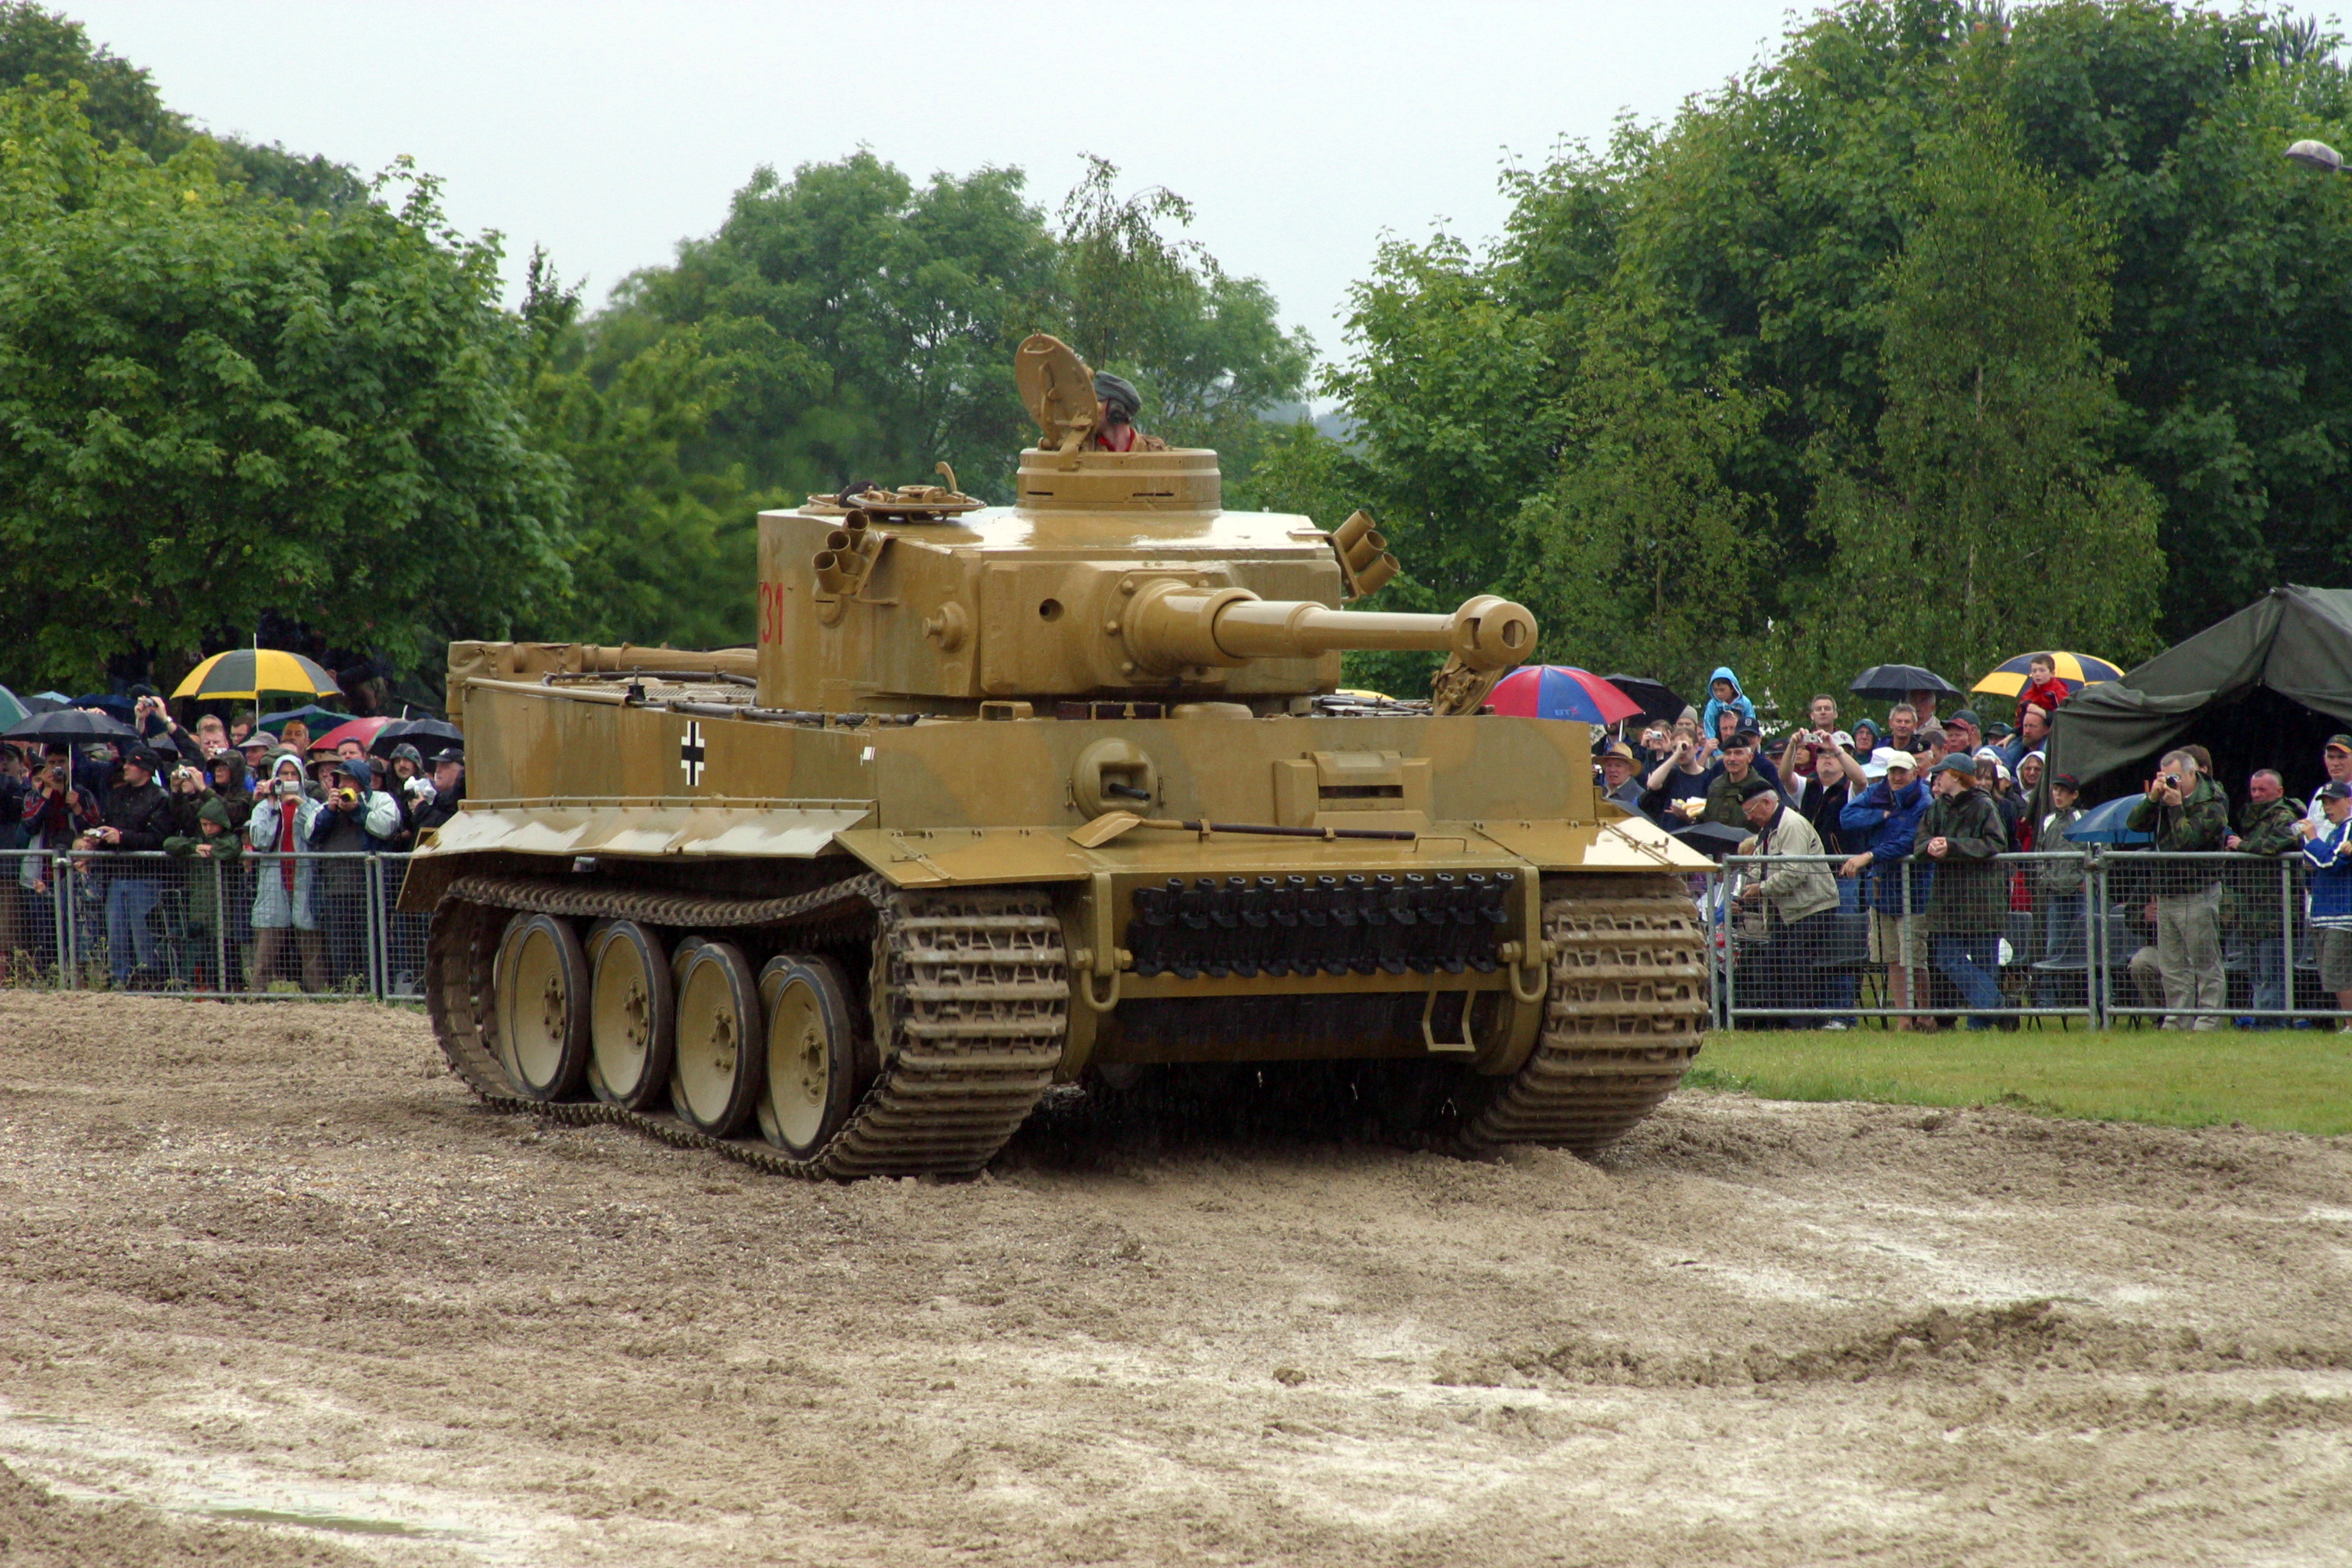 Tankfest 2006, a wet day for a flawless display.